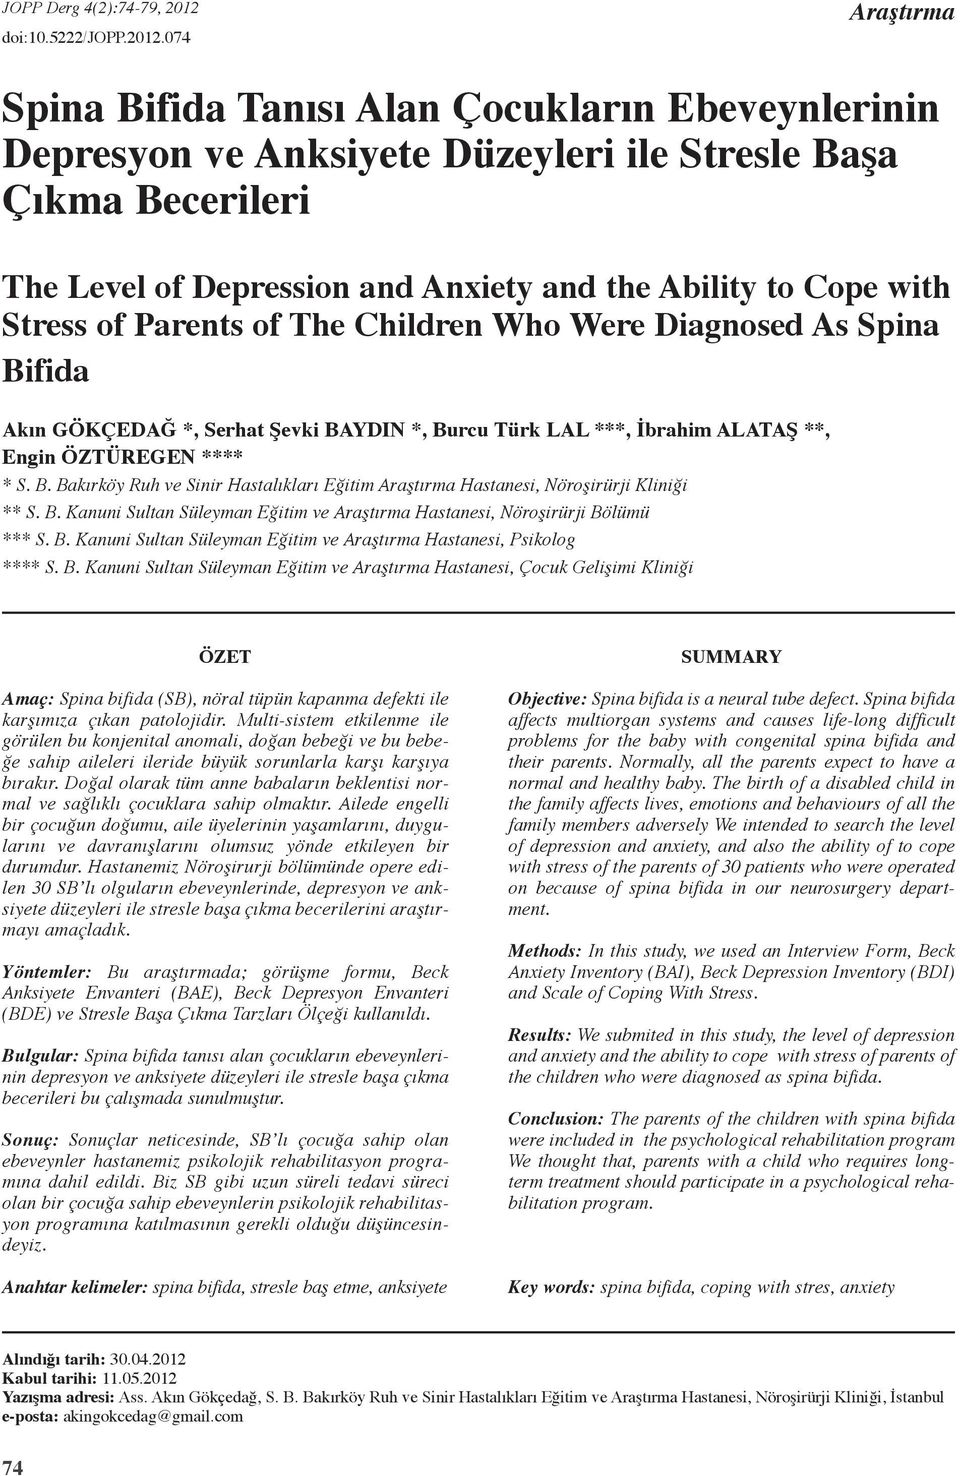 074 Araştırma Spina Bifida Tanısı Alan Çocukların Ebeveynlerinin Depresyon ve Anksiyete Düzeyleri ile Stresle Başa Çıkma Becerileri The Level of Depression and Anxiety and the Ability to Cope with